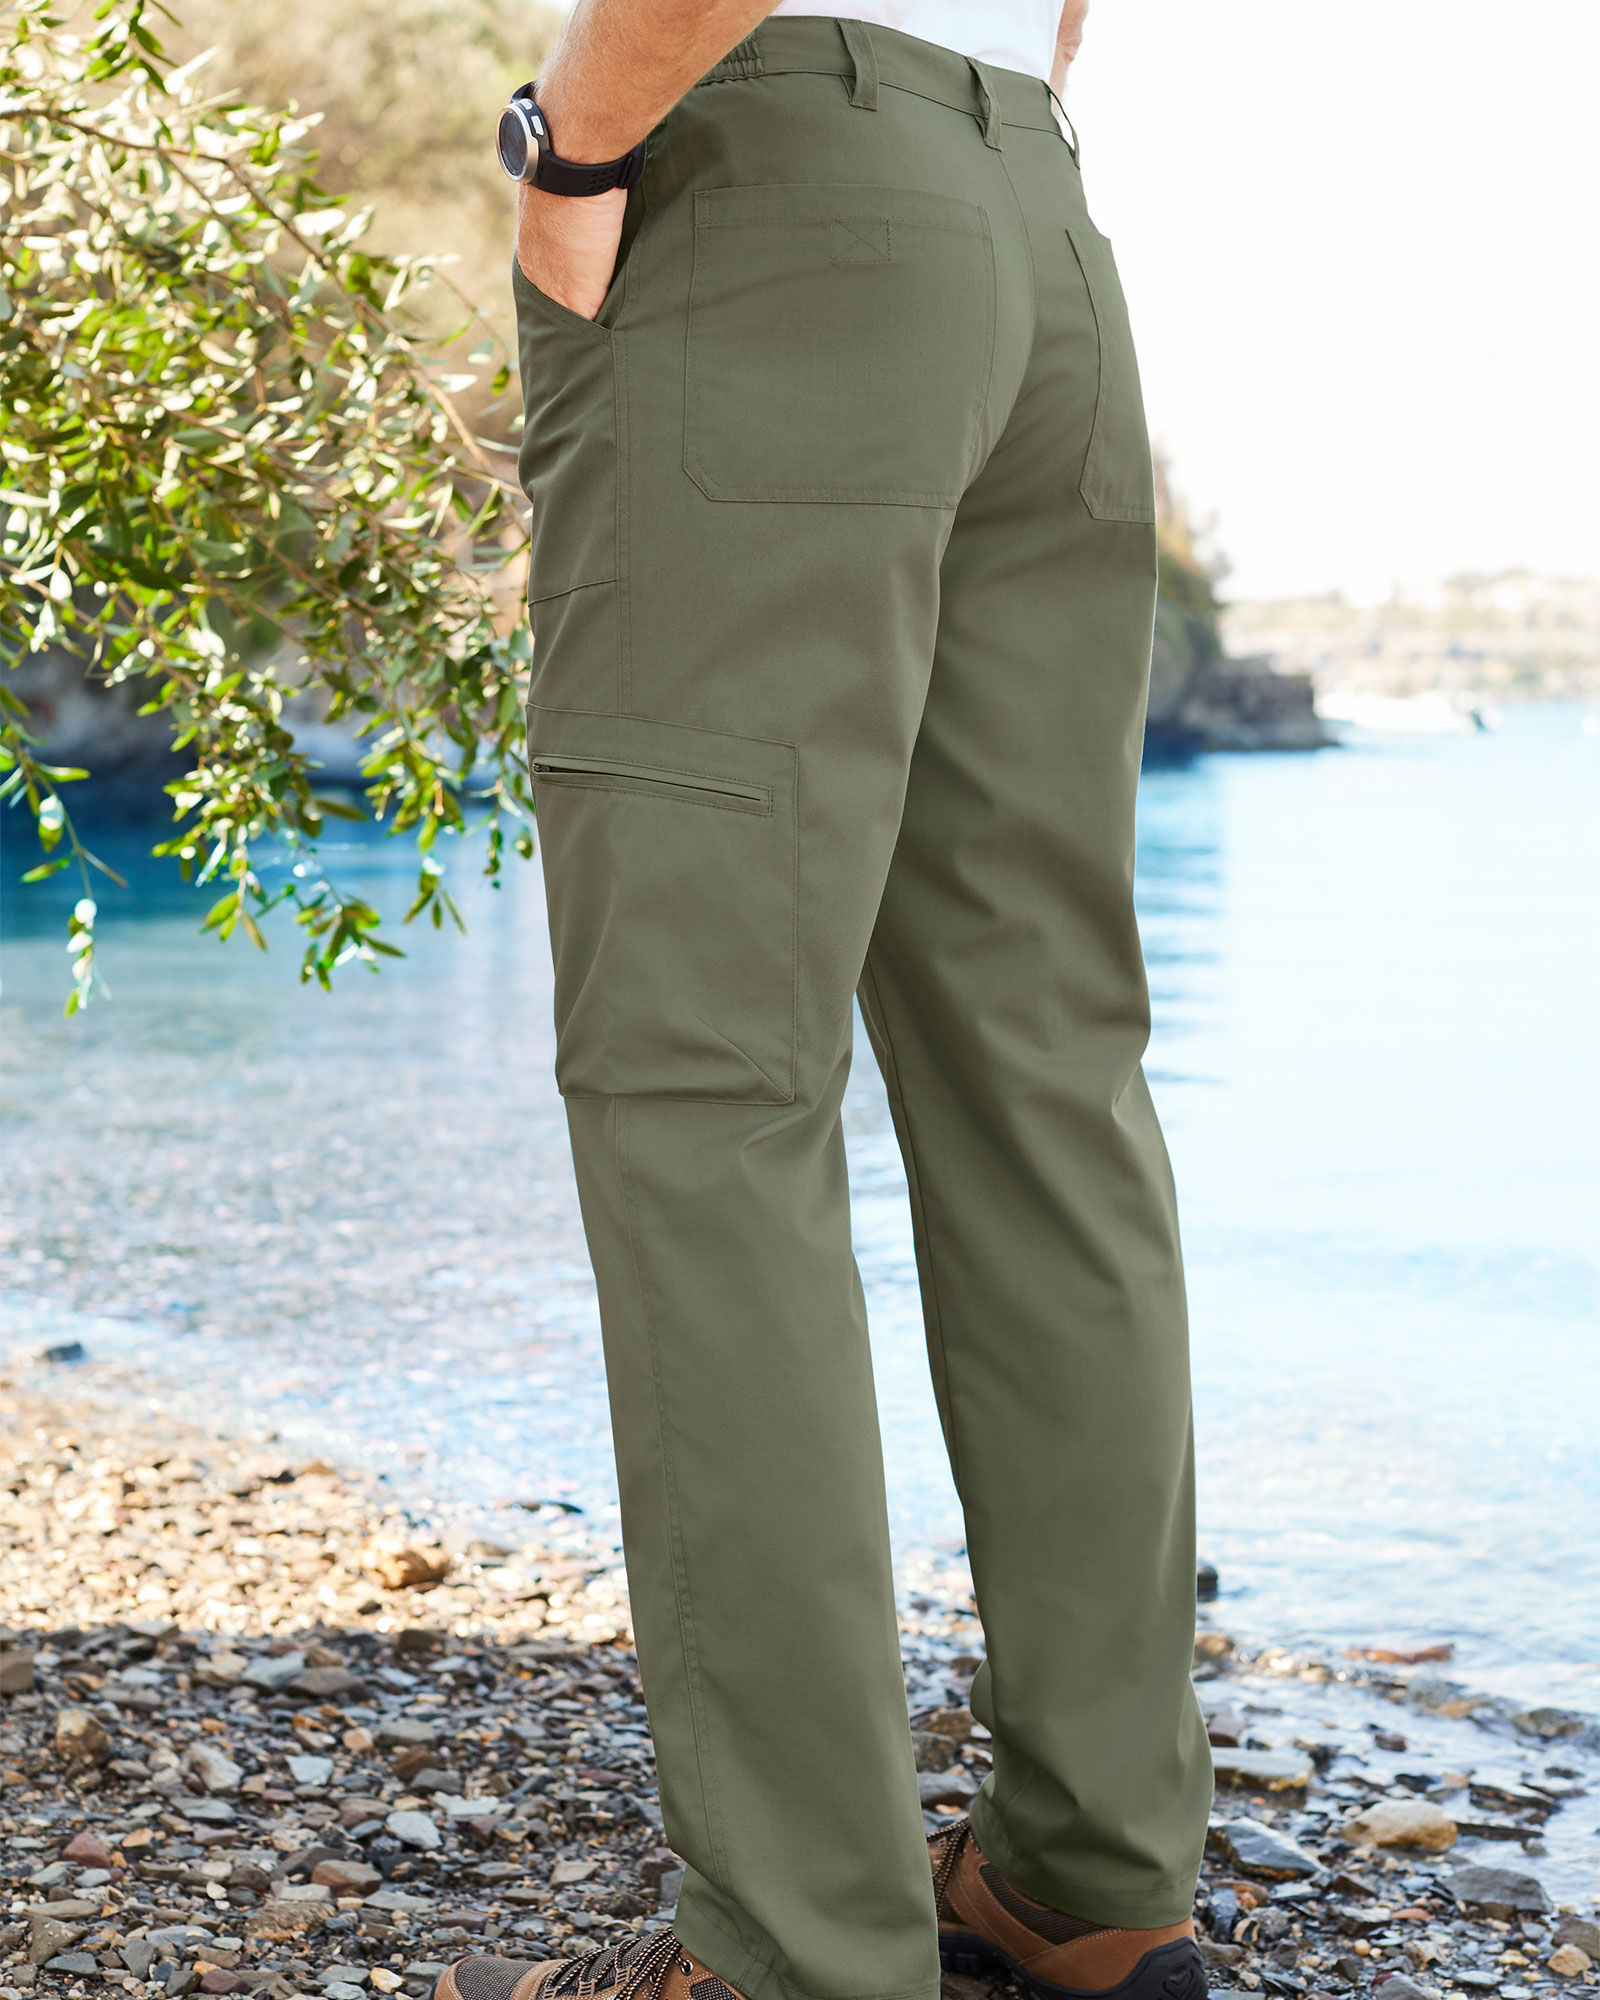 X-Feel Men/'s Cargo Trousers Slim Fit Stretch Chino Trousers 3 Colors